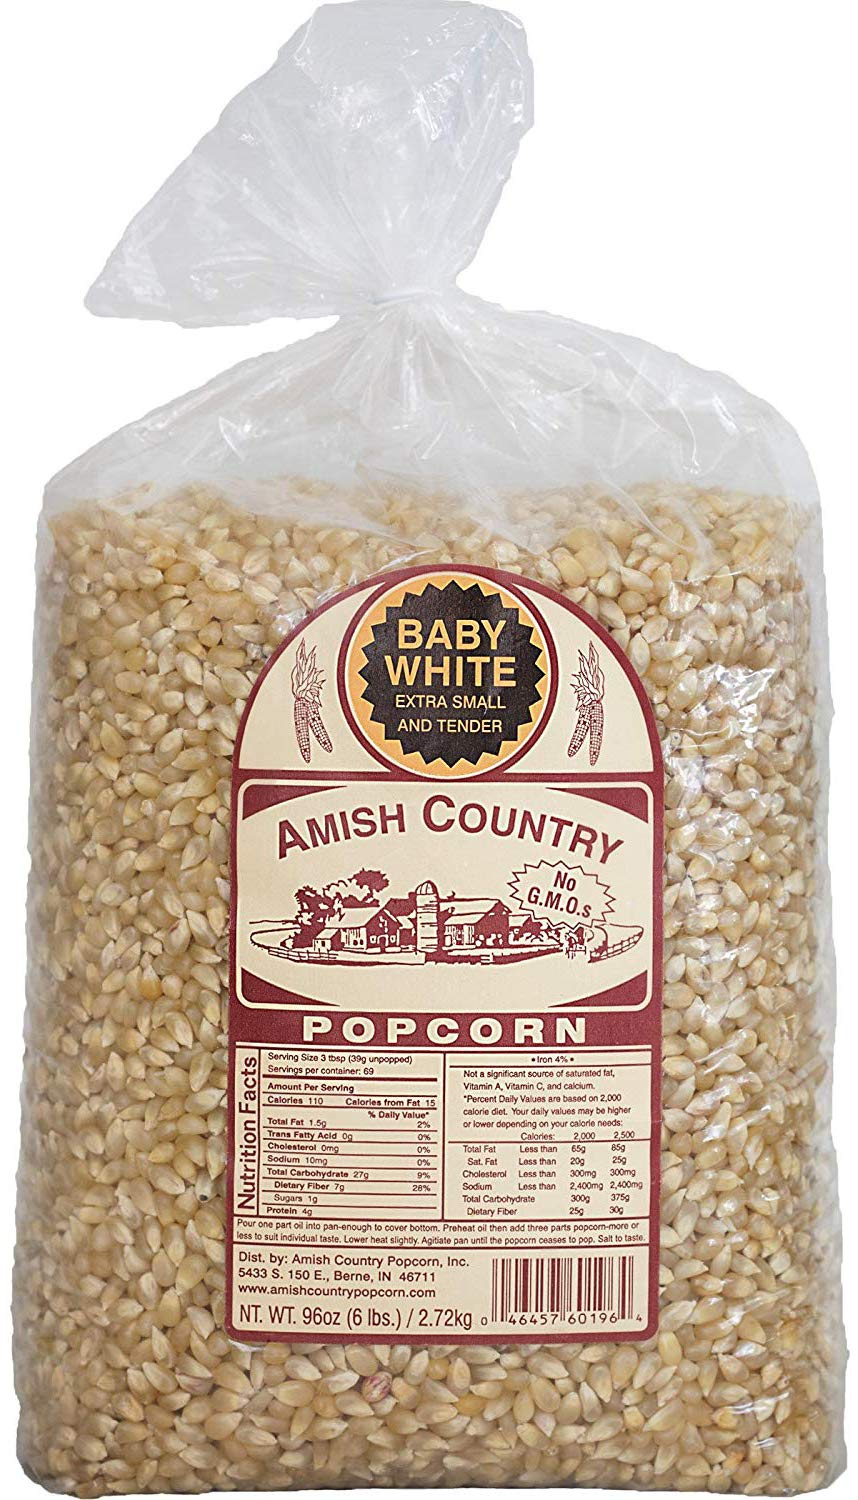 Amish Country Popcorn - Baby White (6 Pound Bag) - Small & Tender Popcorn